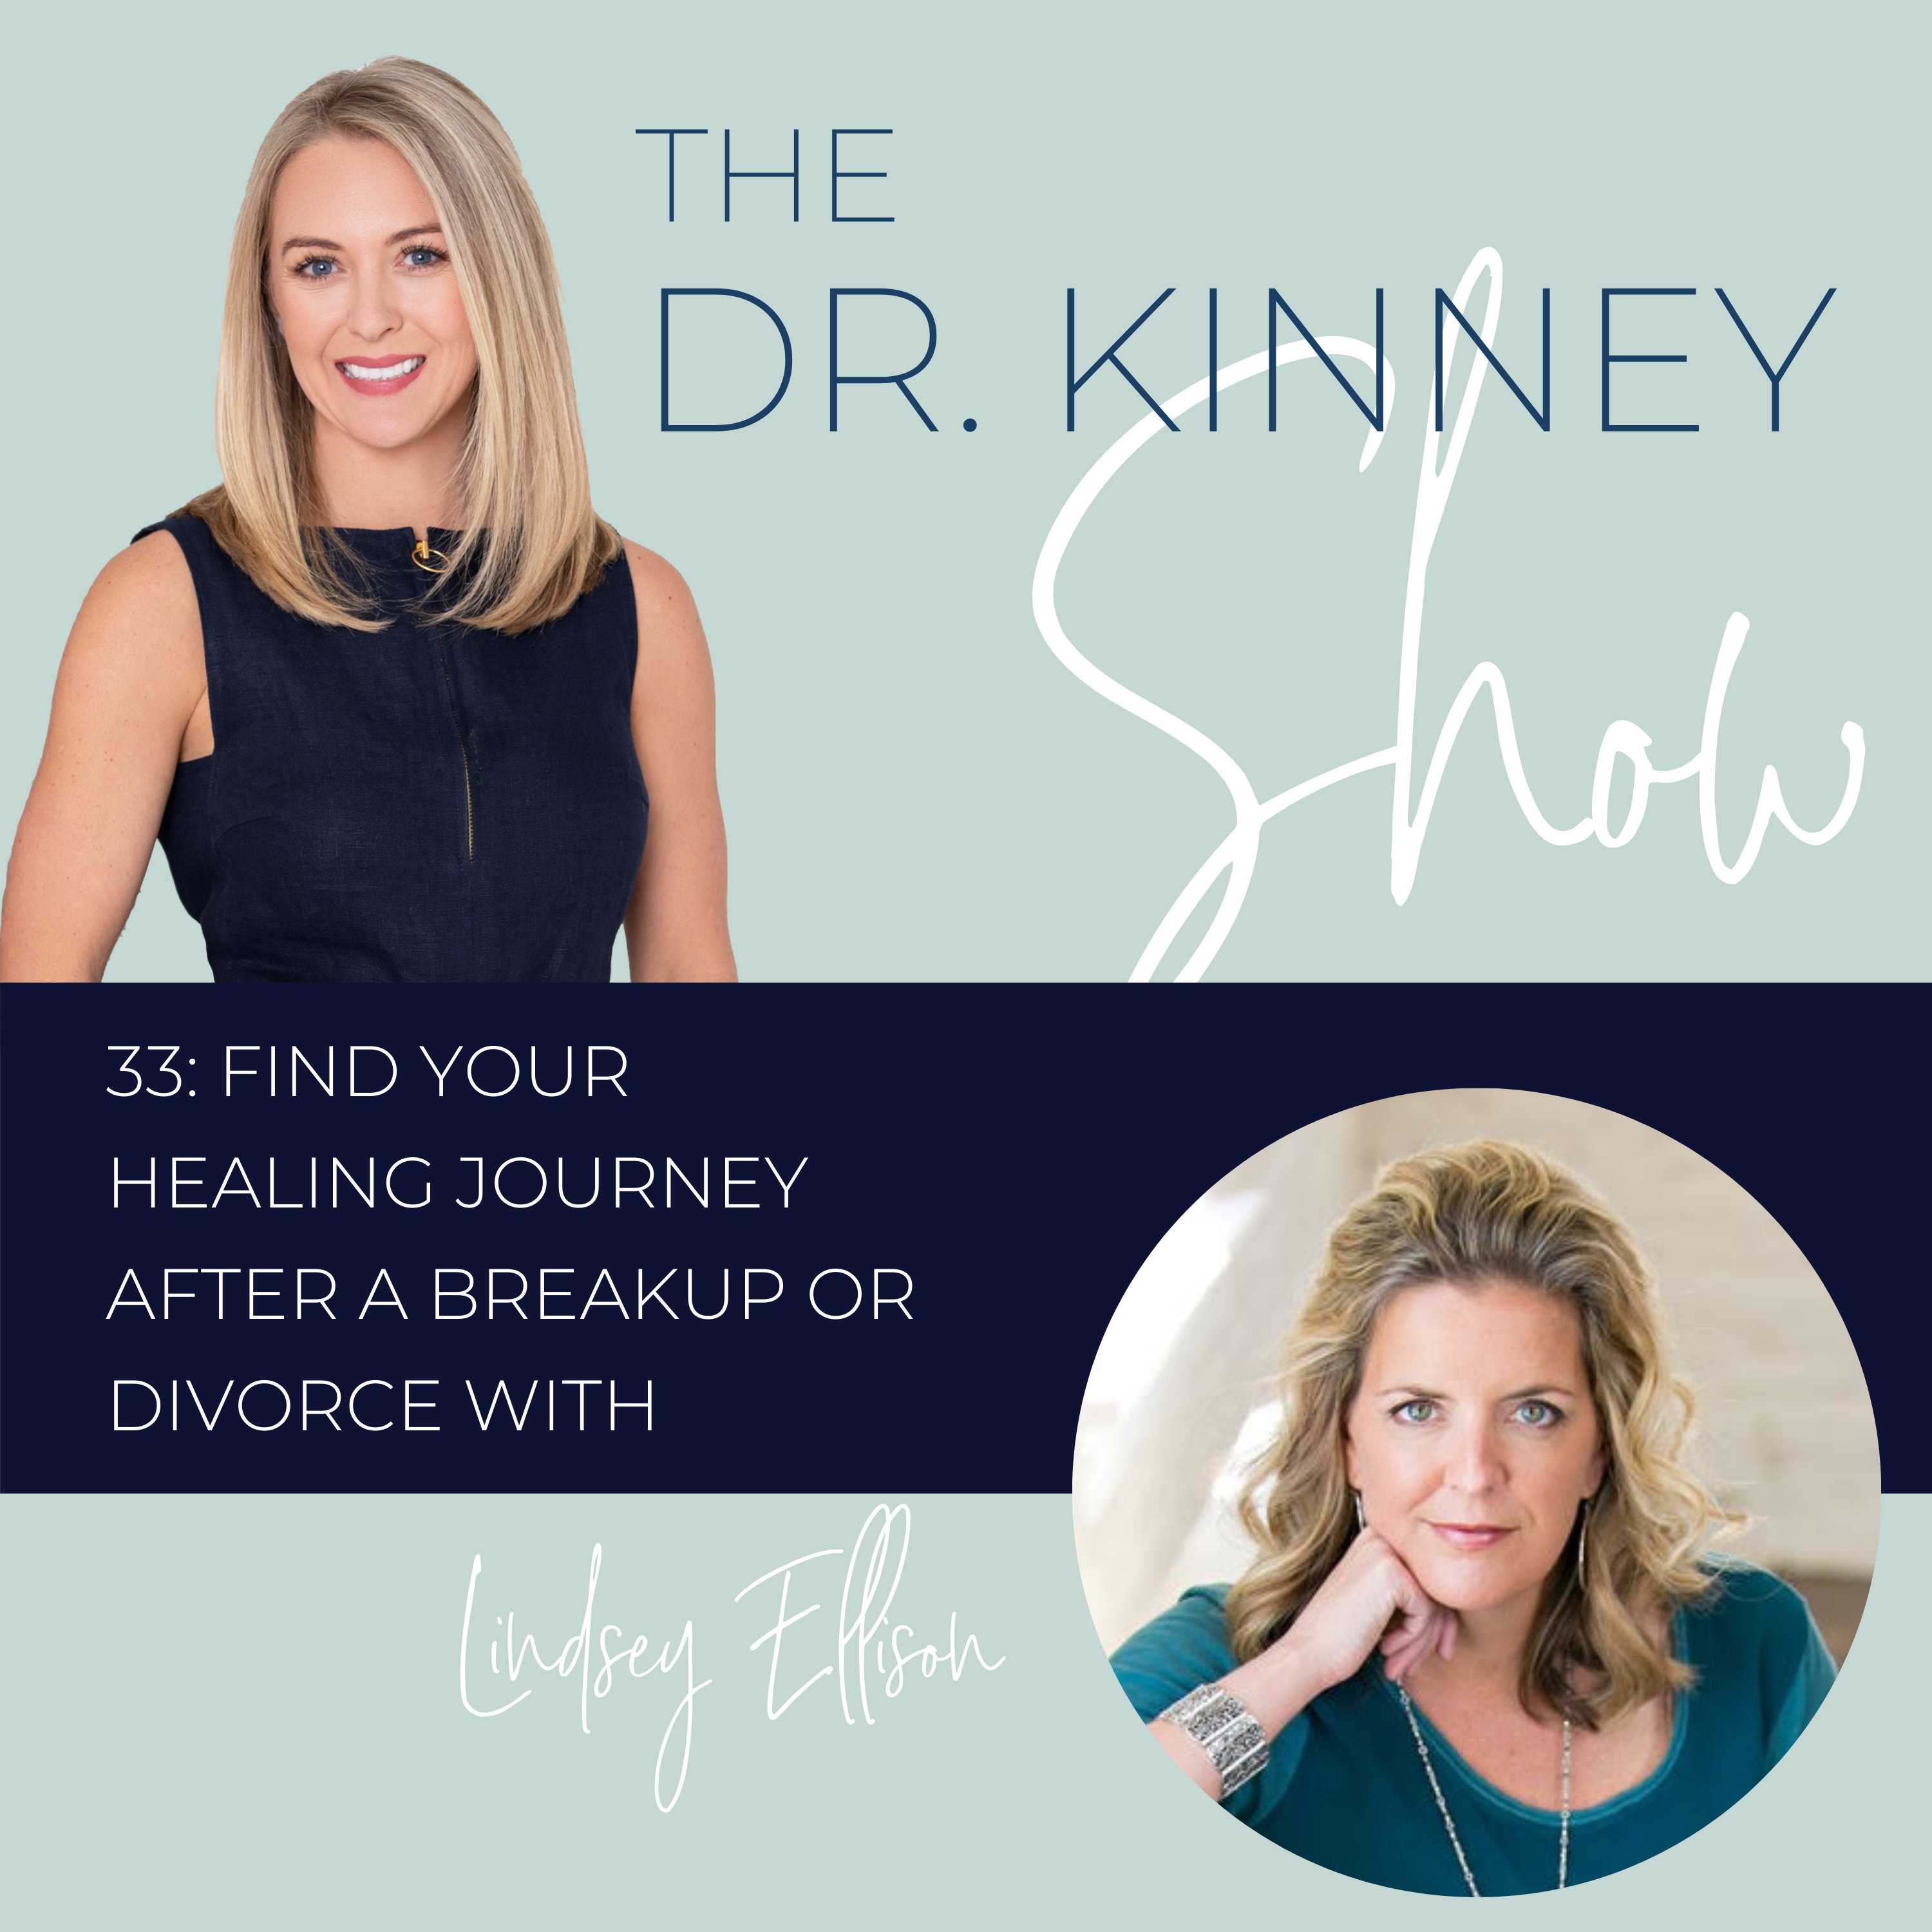 Find Your Healing Journey